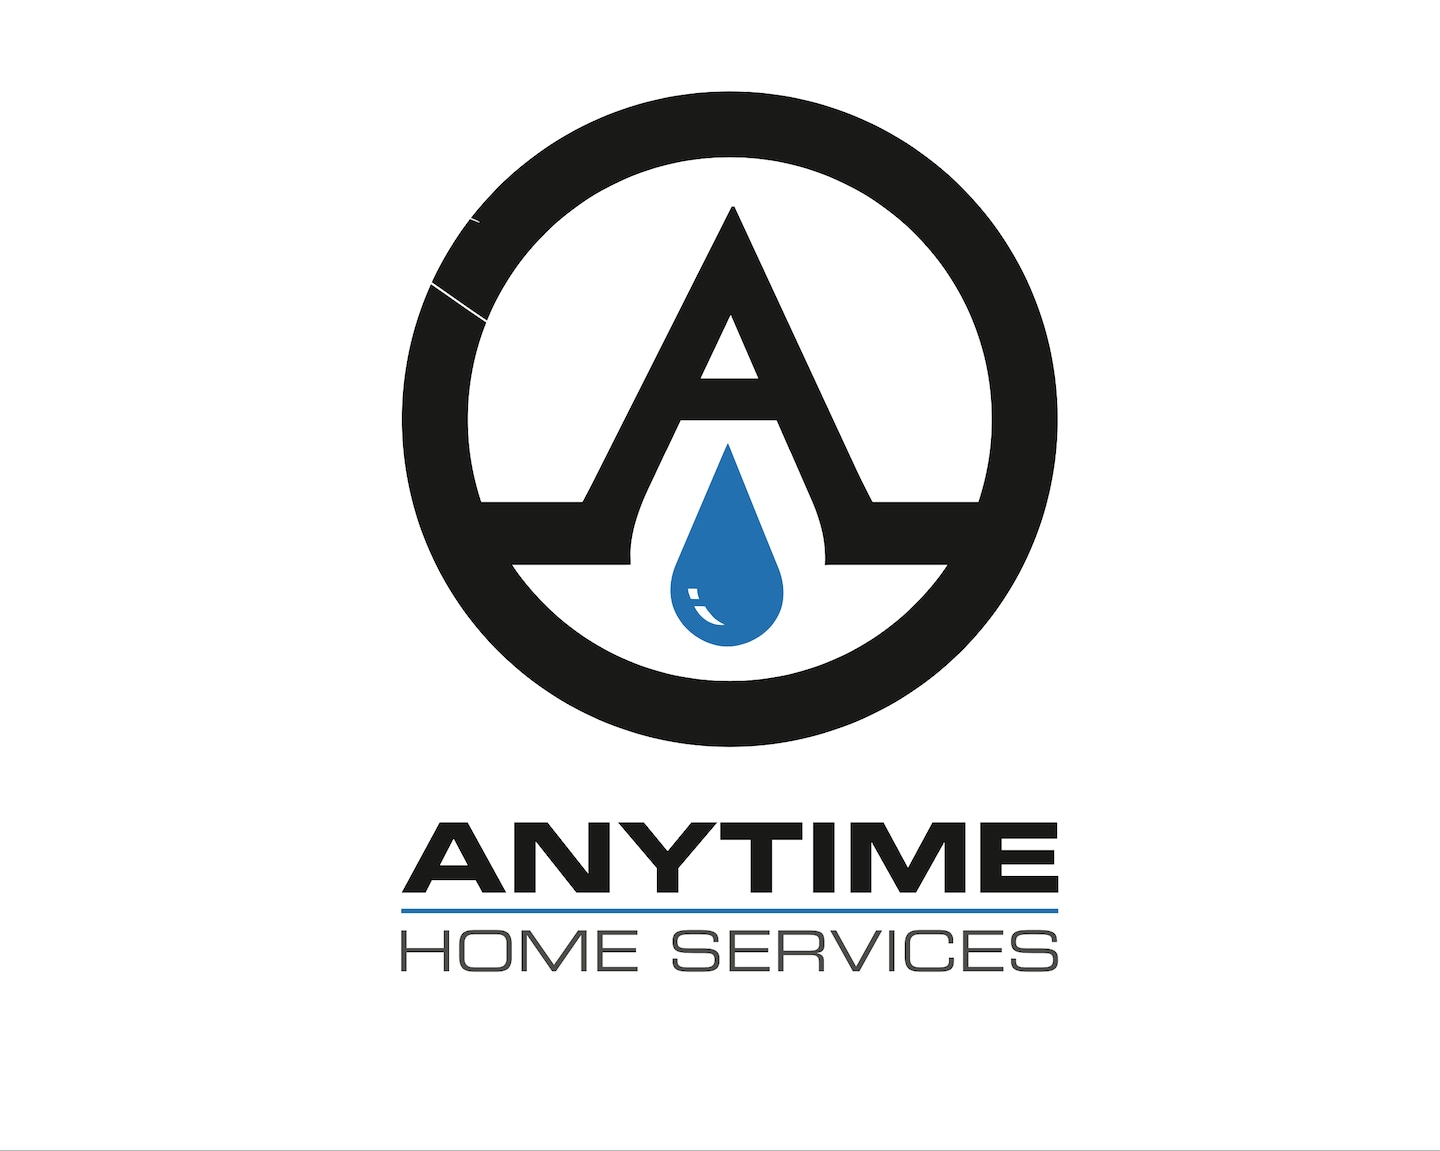 Anytime Home Services